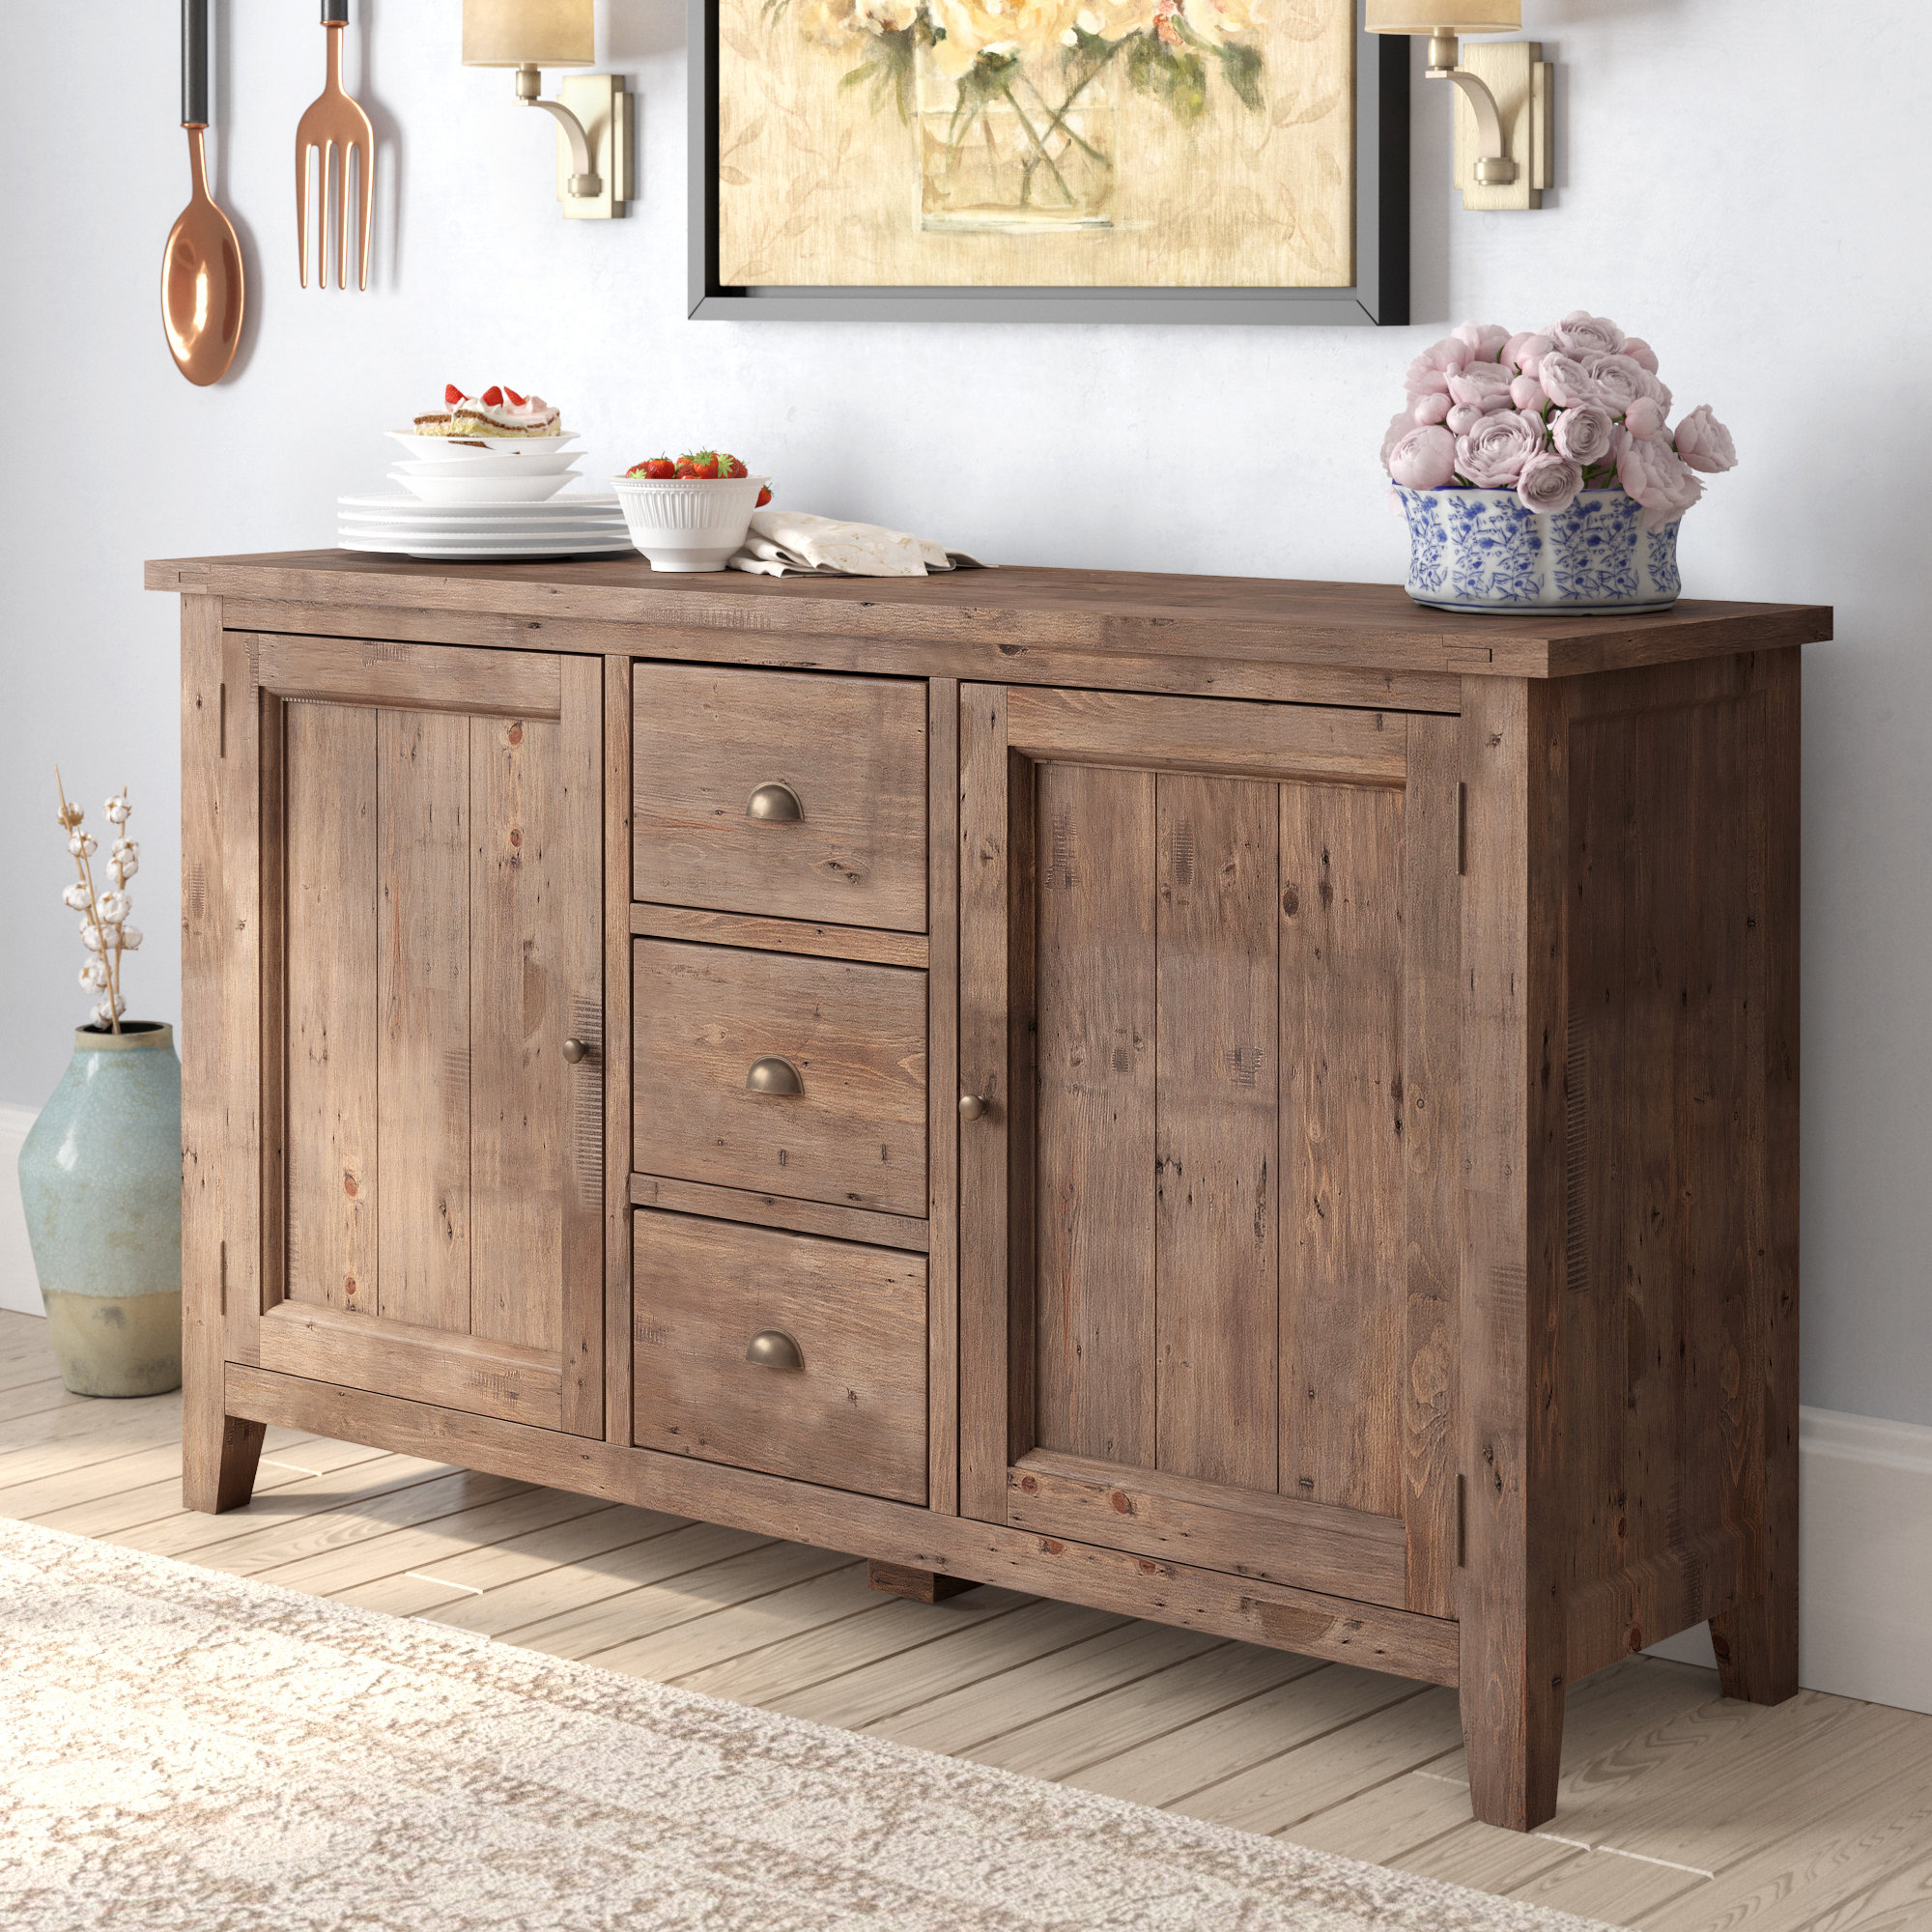 Widely Used Wilmore Sideboard With Regard To Whitten Sideboards (View 20 of 20)